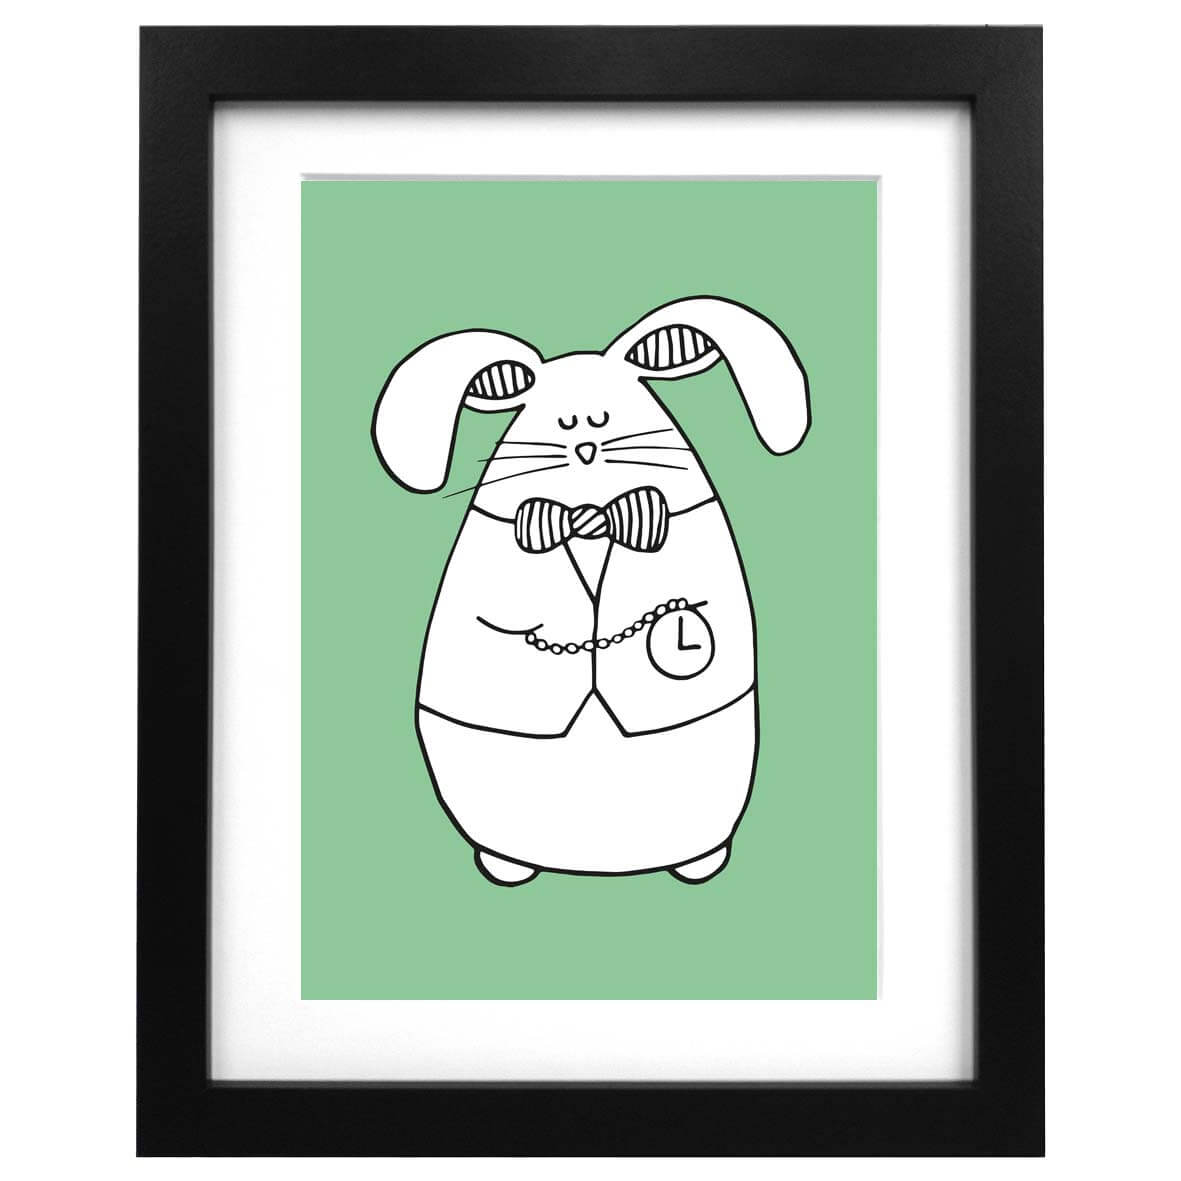 Green A3 sized art print with an illustration of a white rabbit